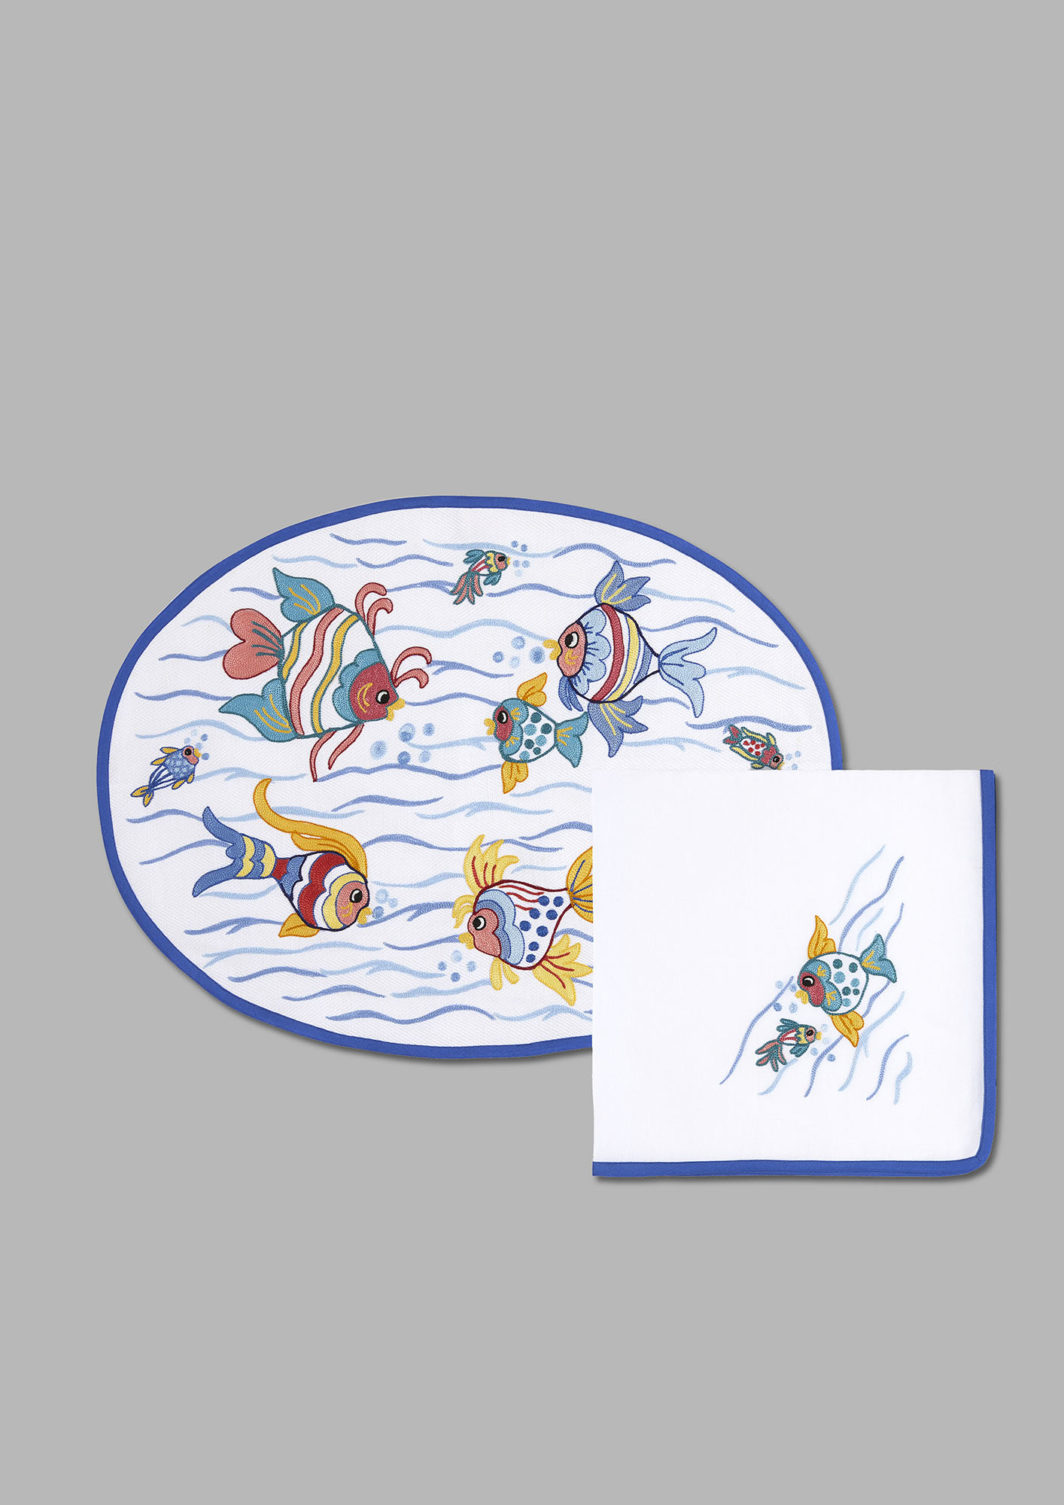 TROPICAL FISH PLACEMAT SET OF 2